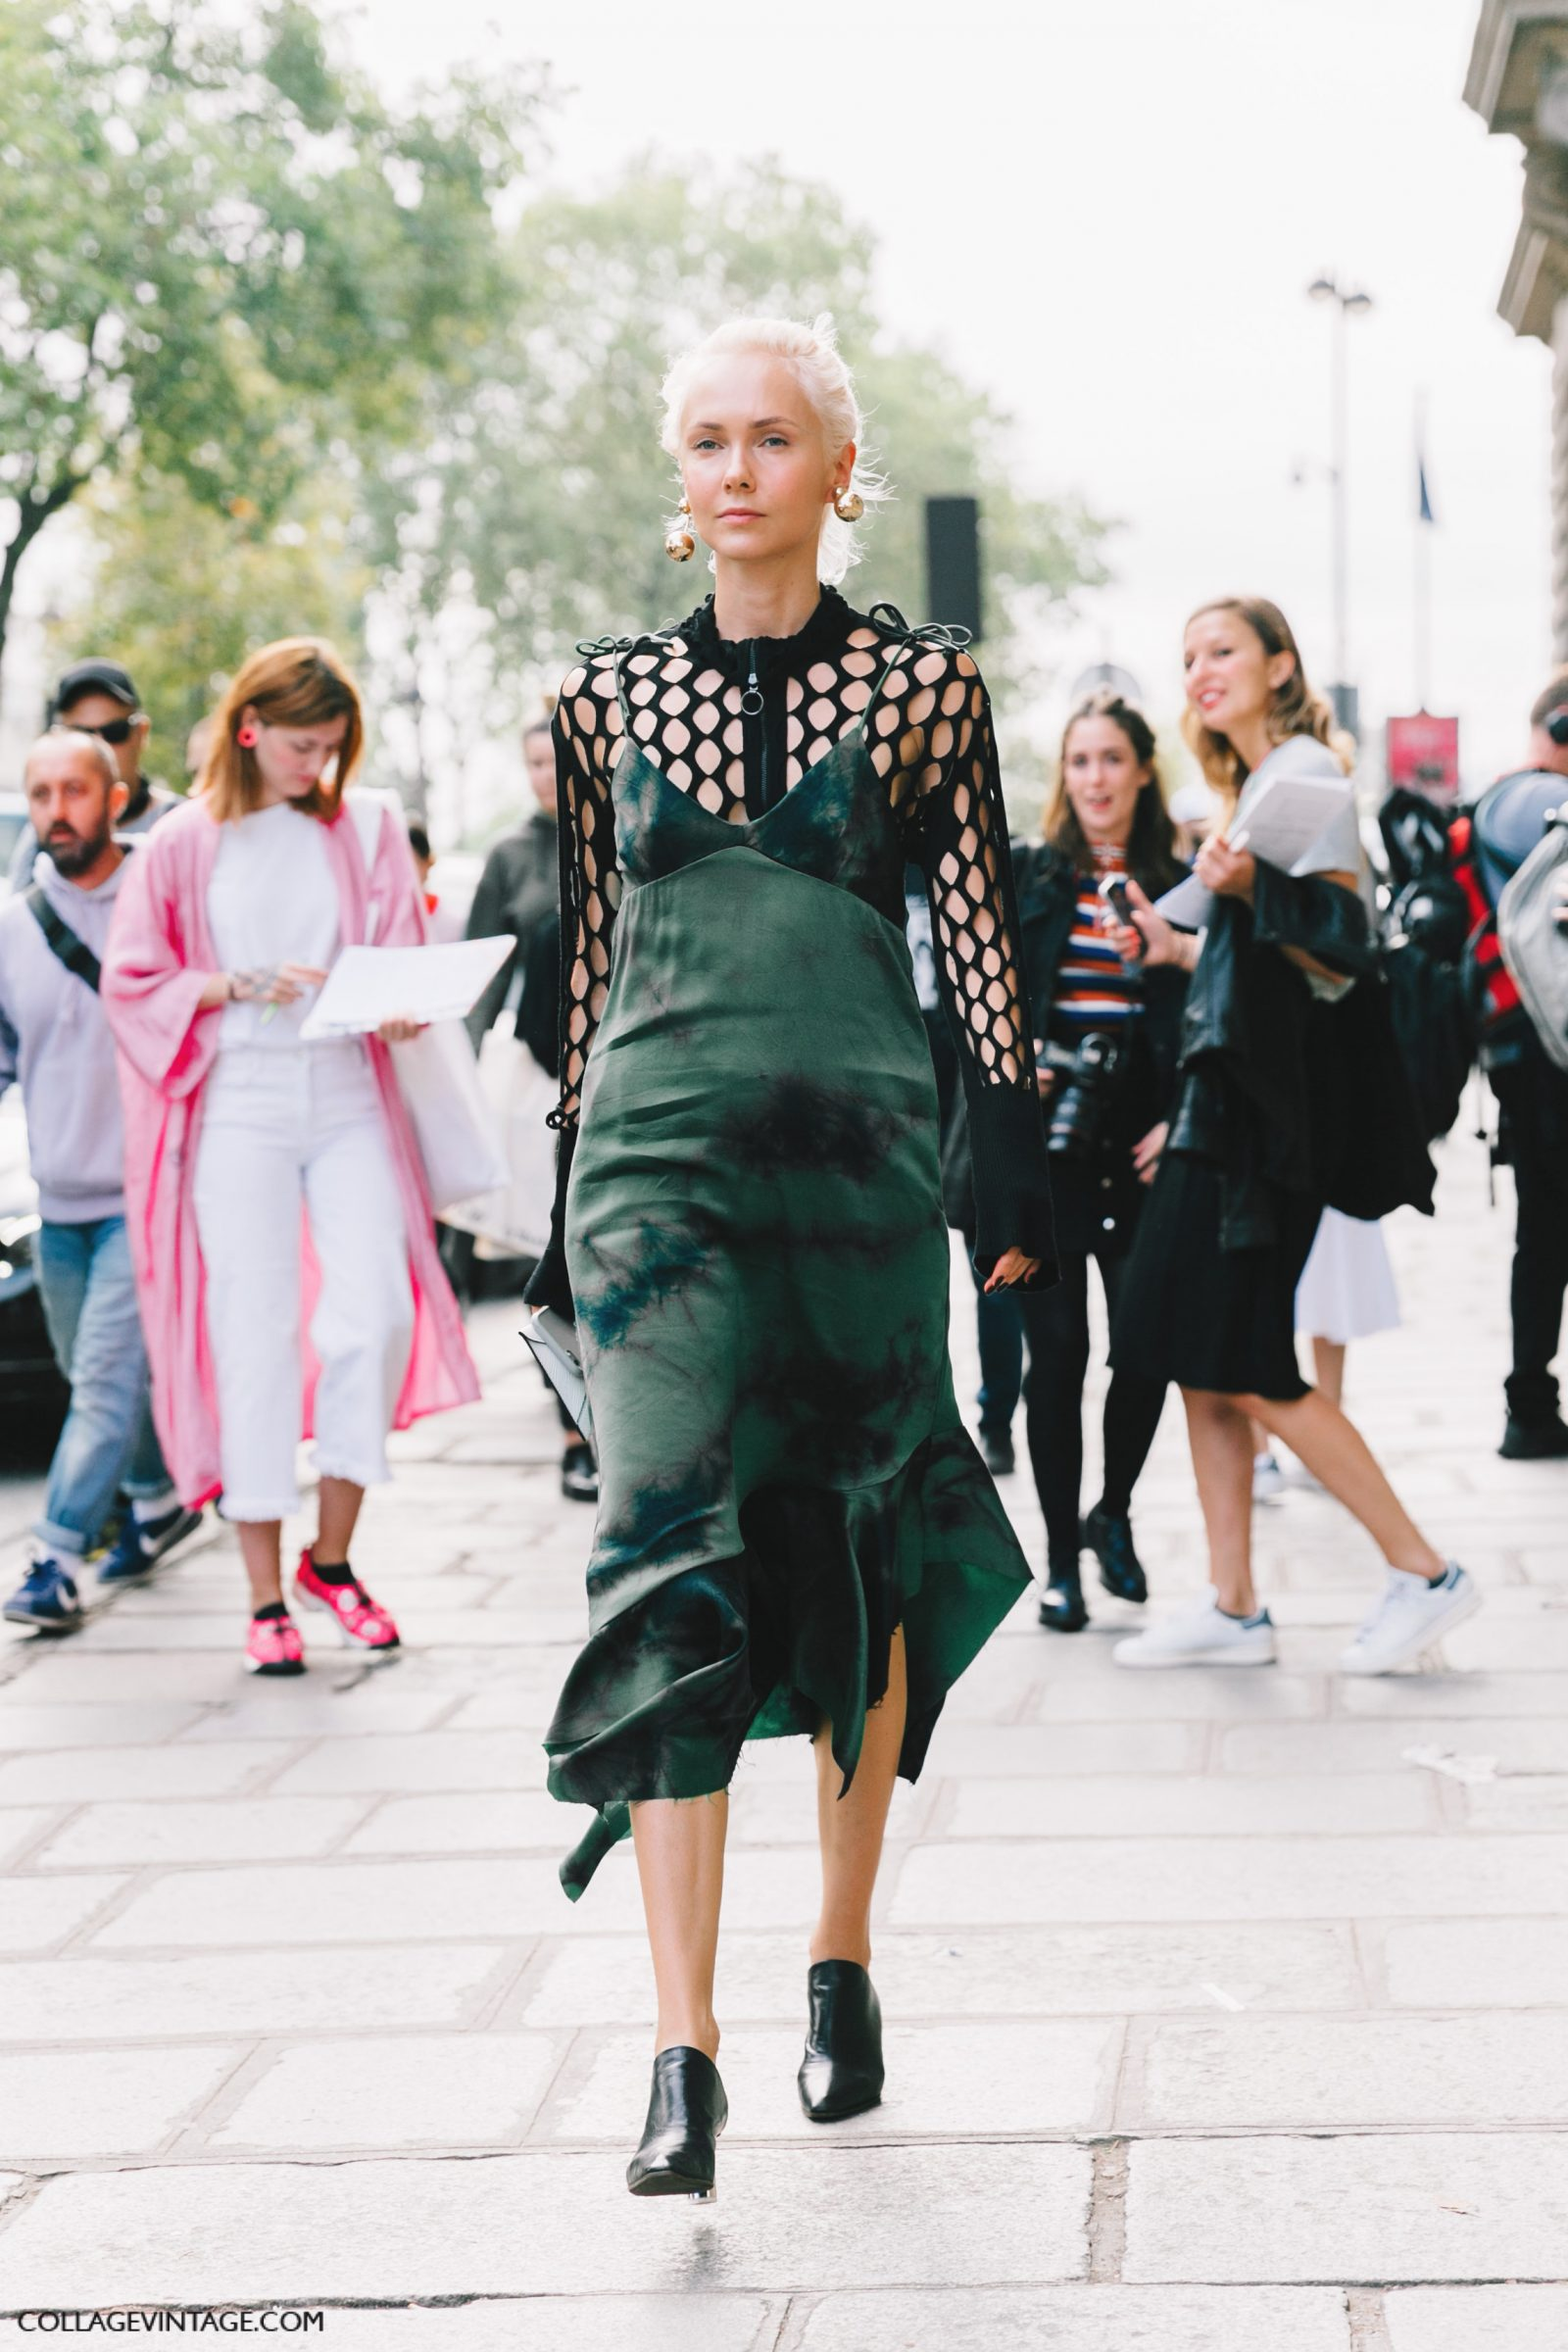 pfw-paris_fashion_week_ss17-street_style-outfits-collage_vintage-rochas-courreges-dries_van_noten-lanvin-guy_laroche-8